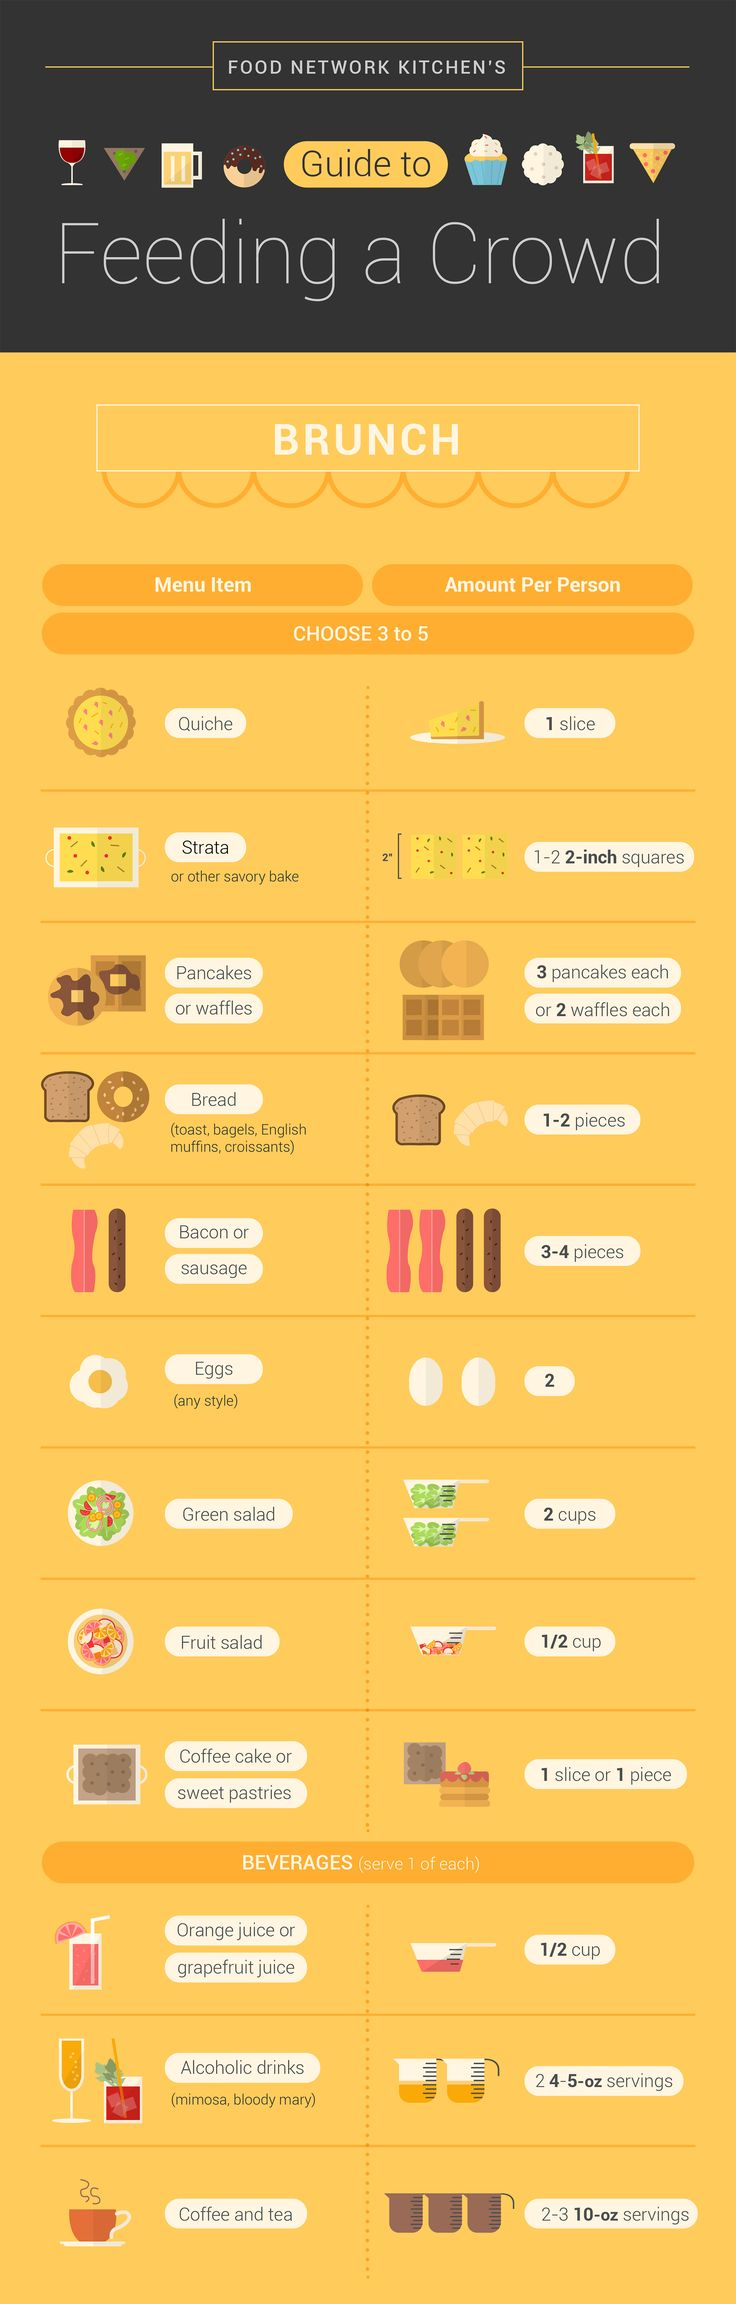 How Much Food to Serve at Brunch: Food Network